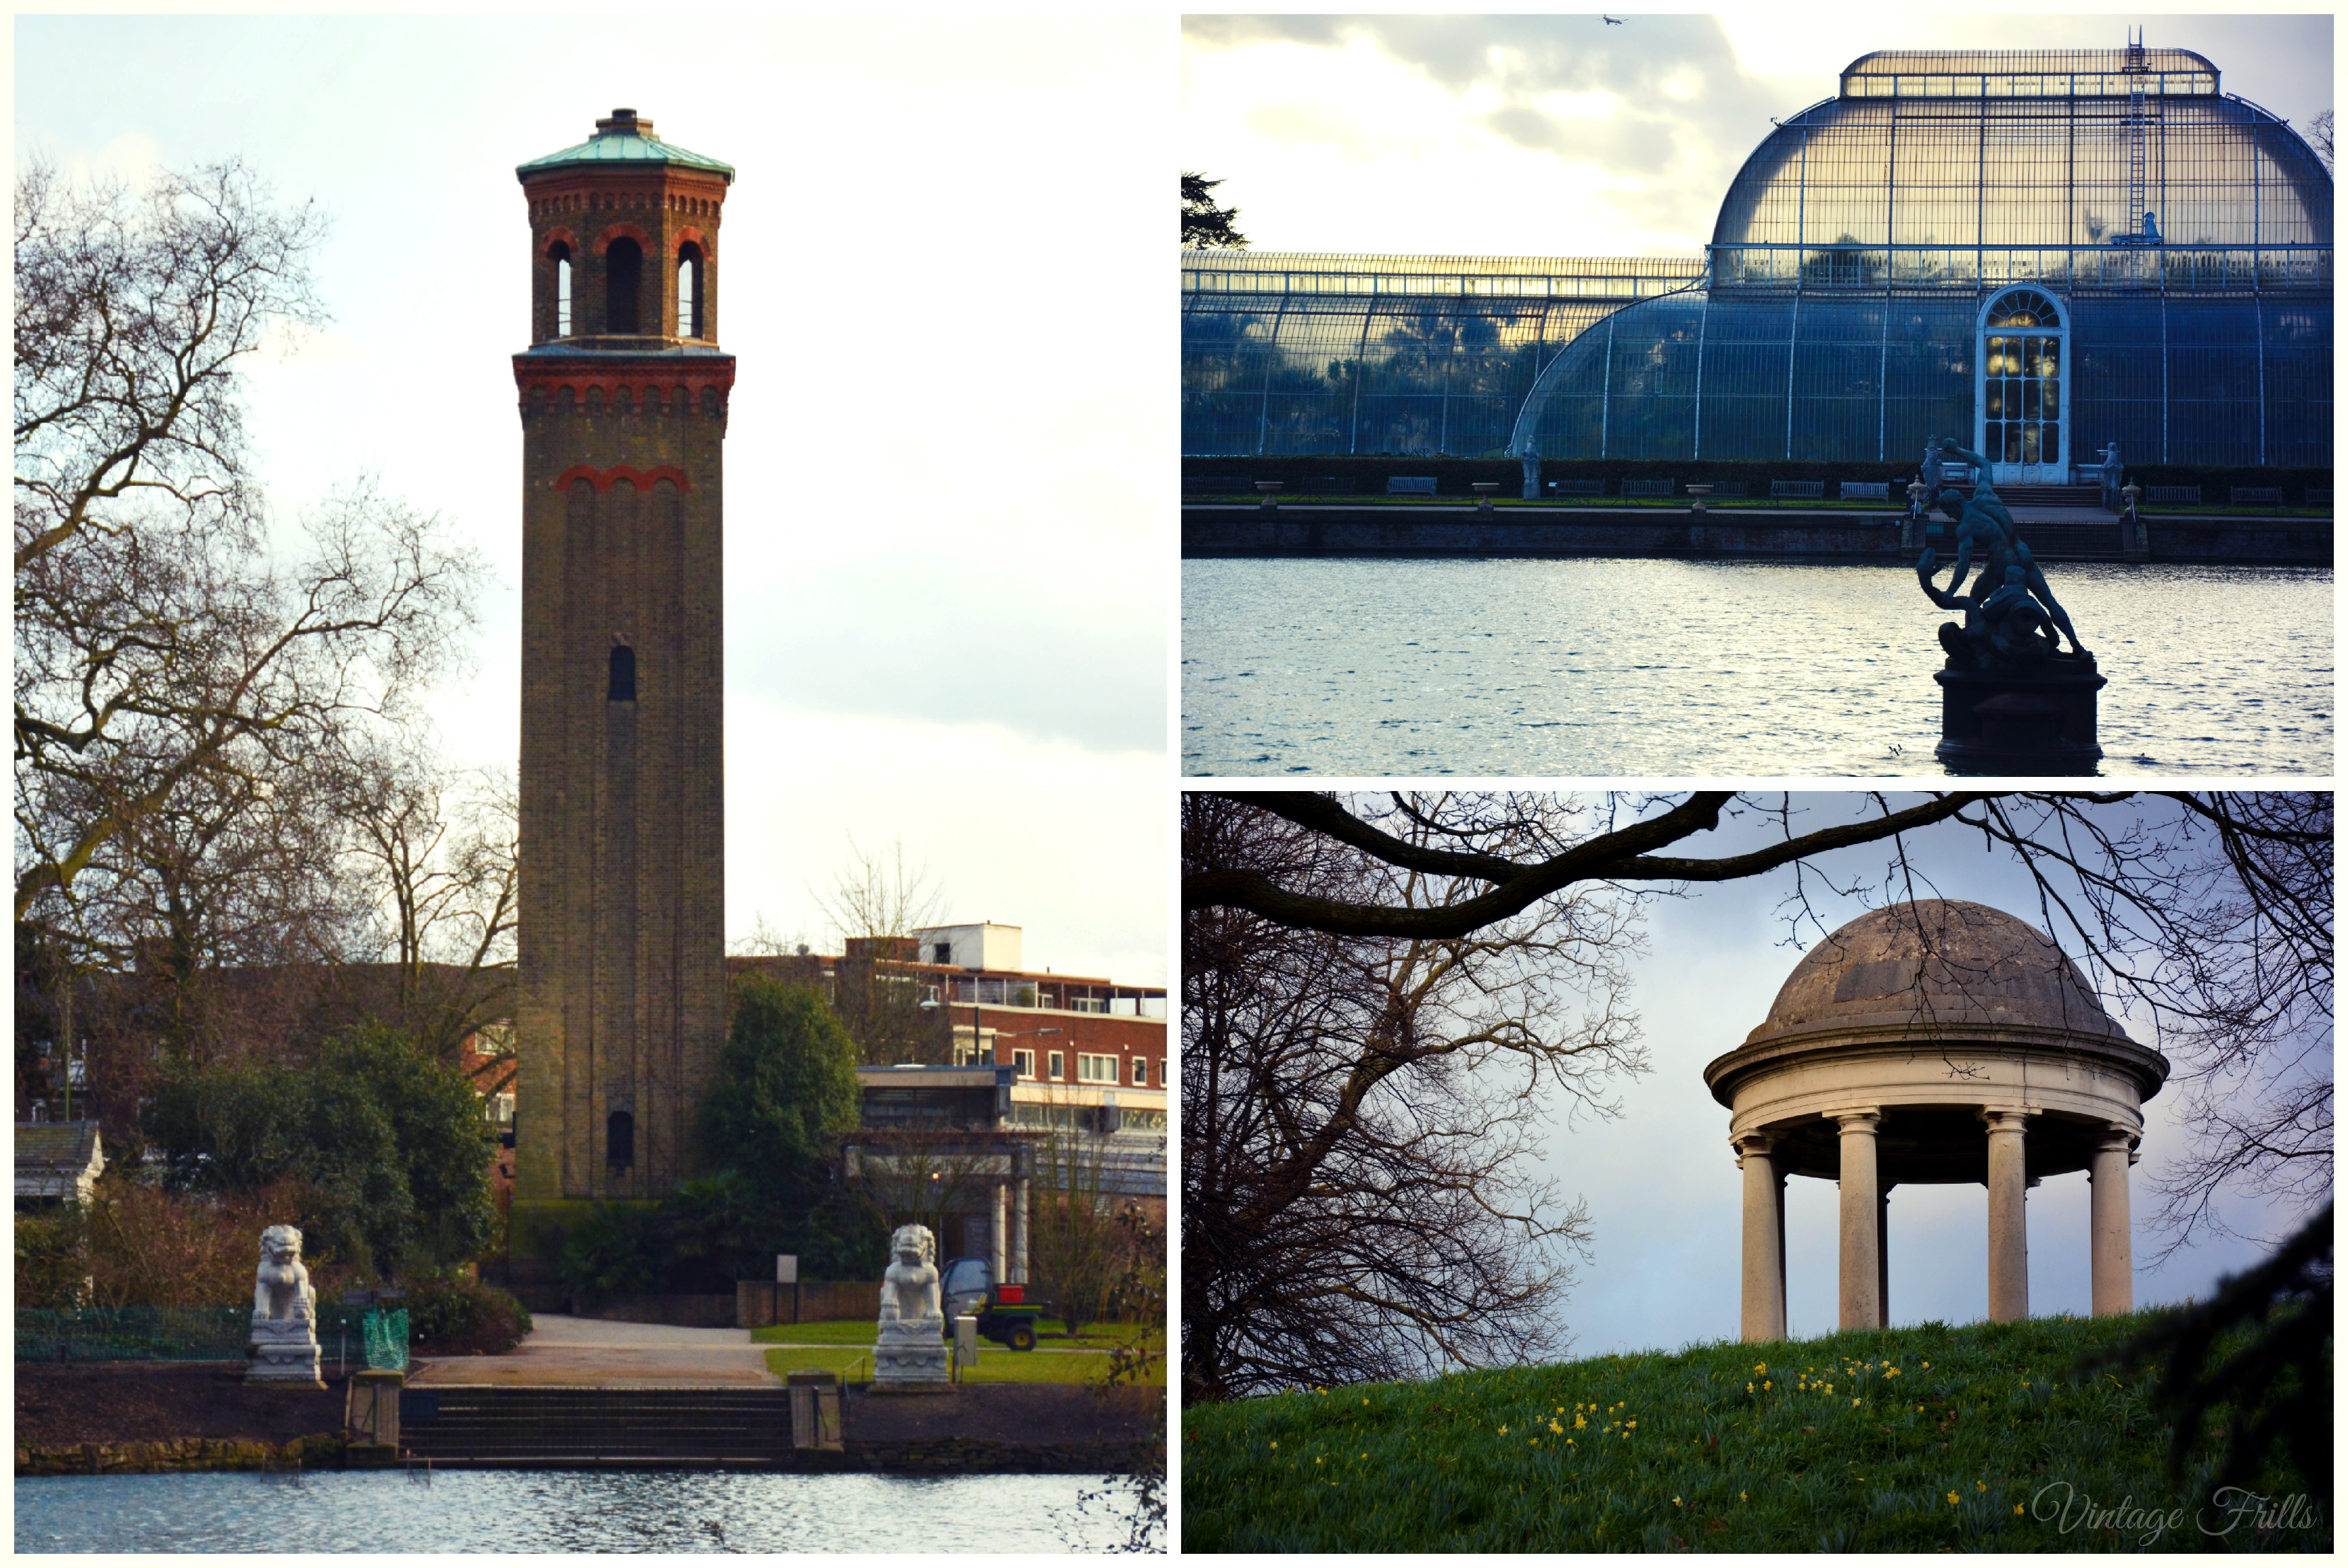 Kew Gardens Tower and Palm House